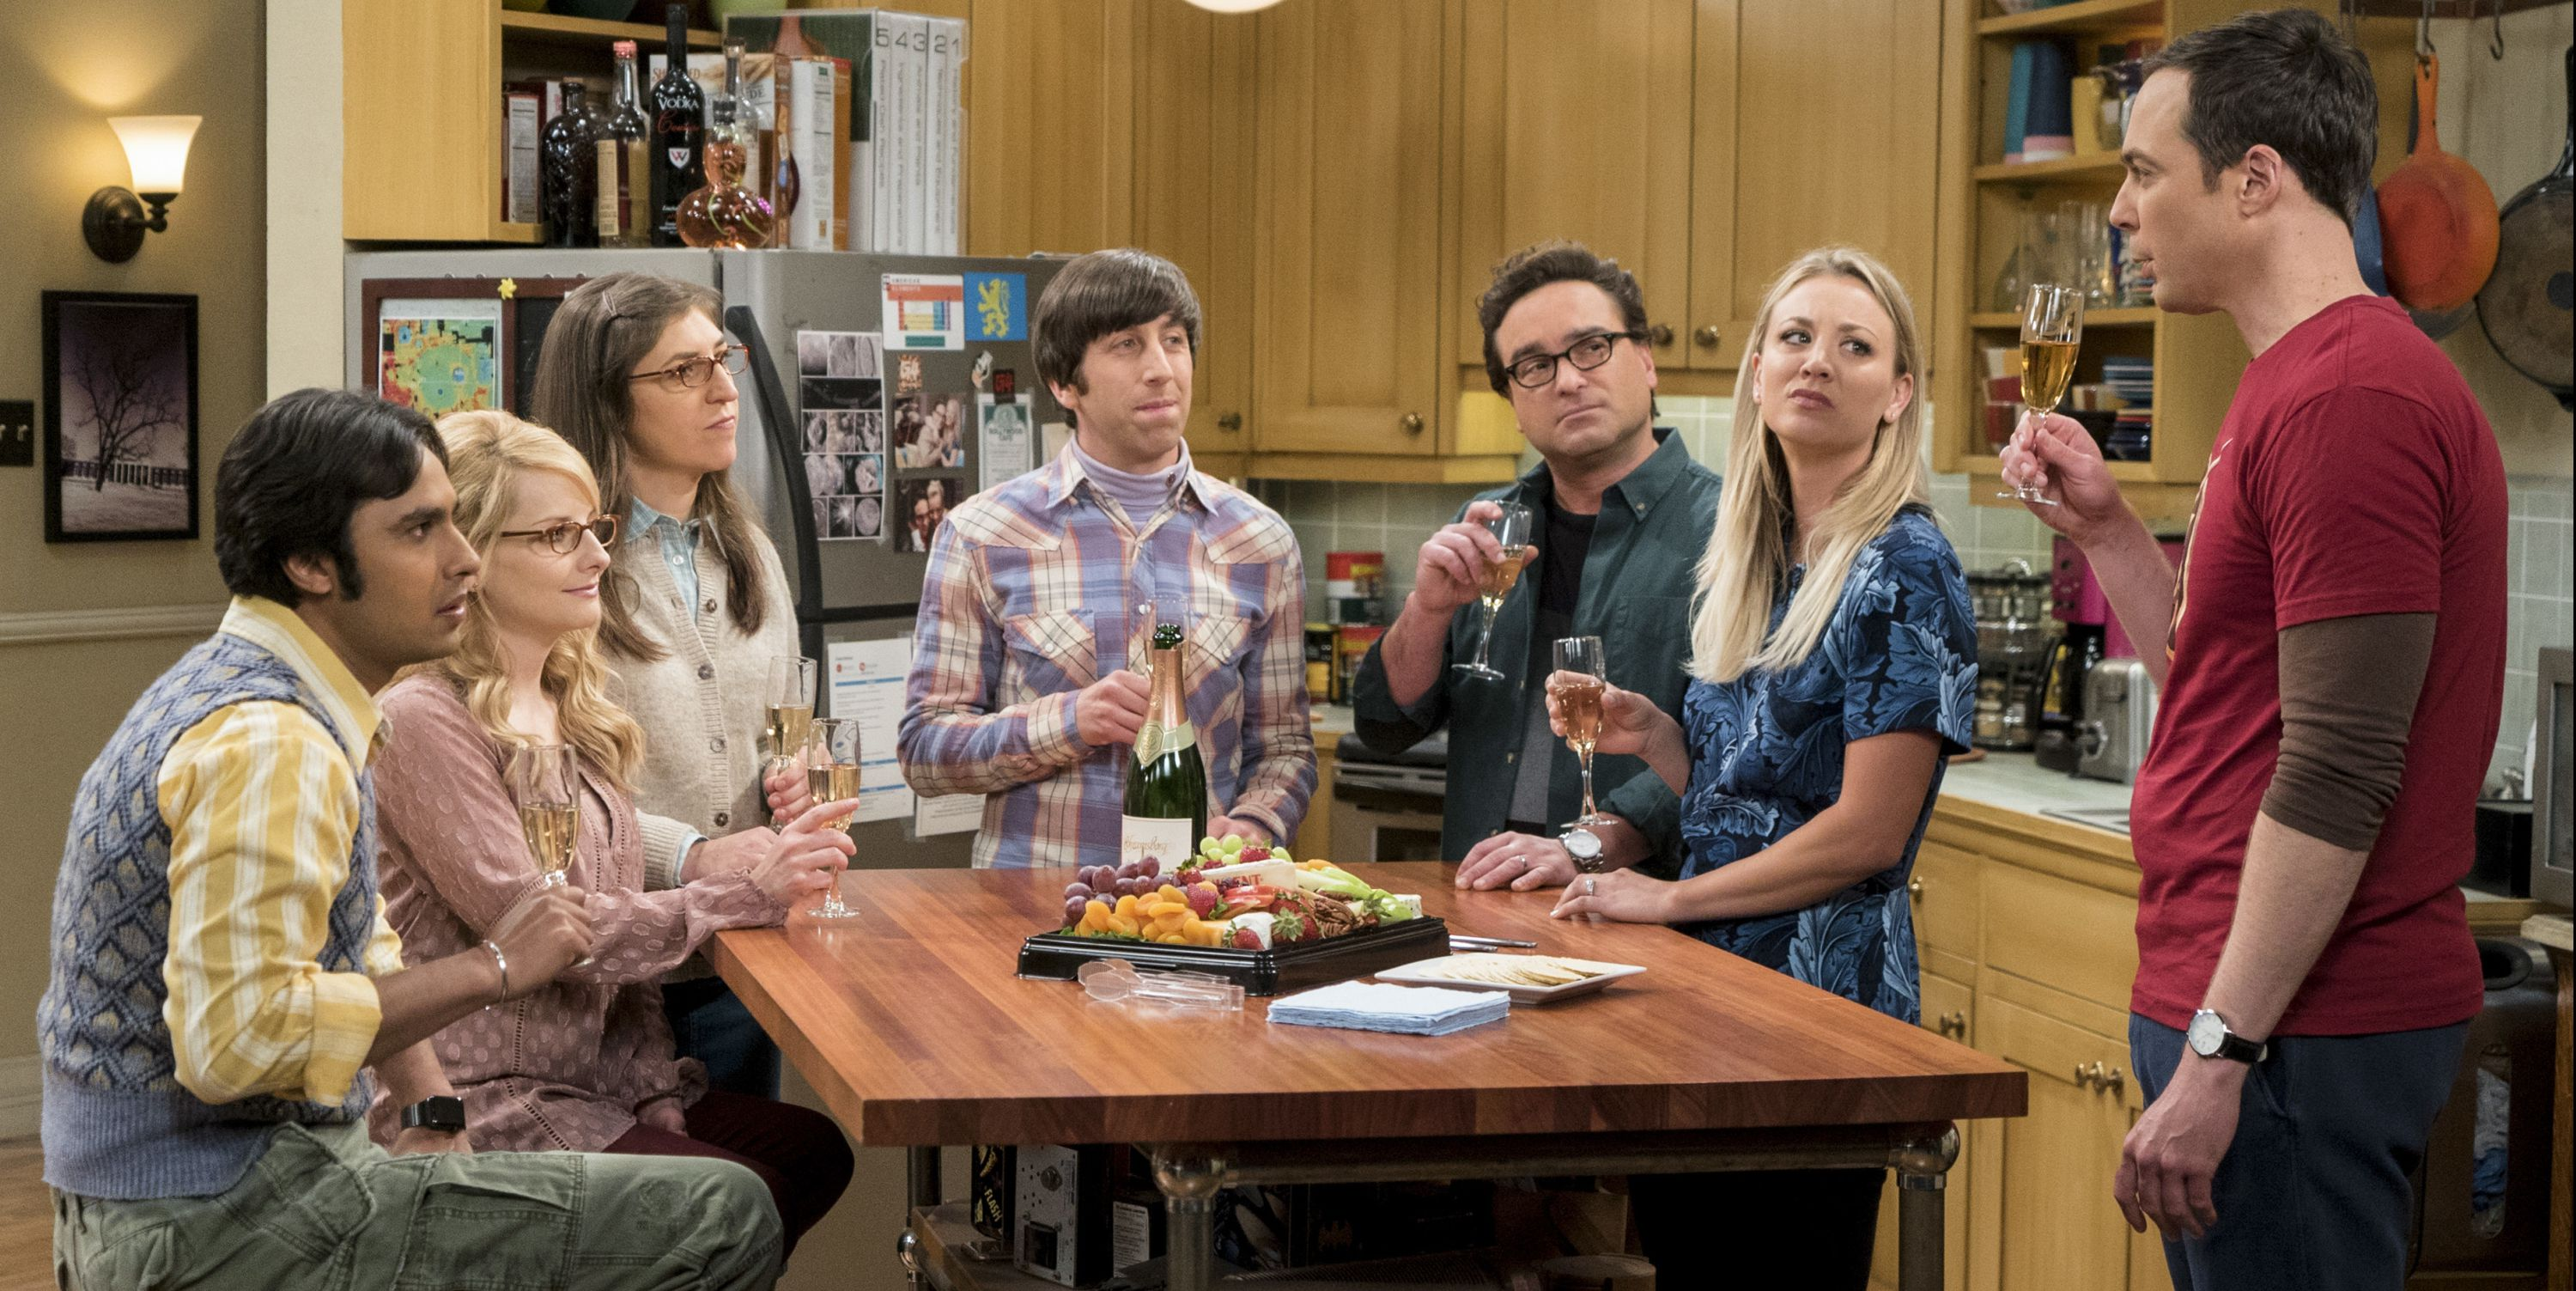 'The Big Bang Theory' Is Ending, and the Cast Is Getting Emotional